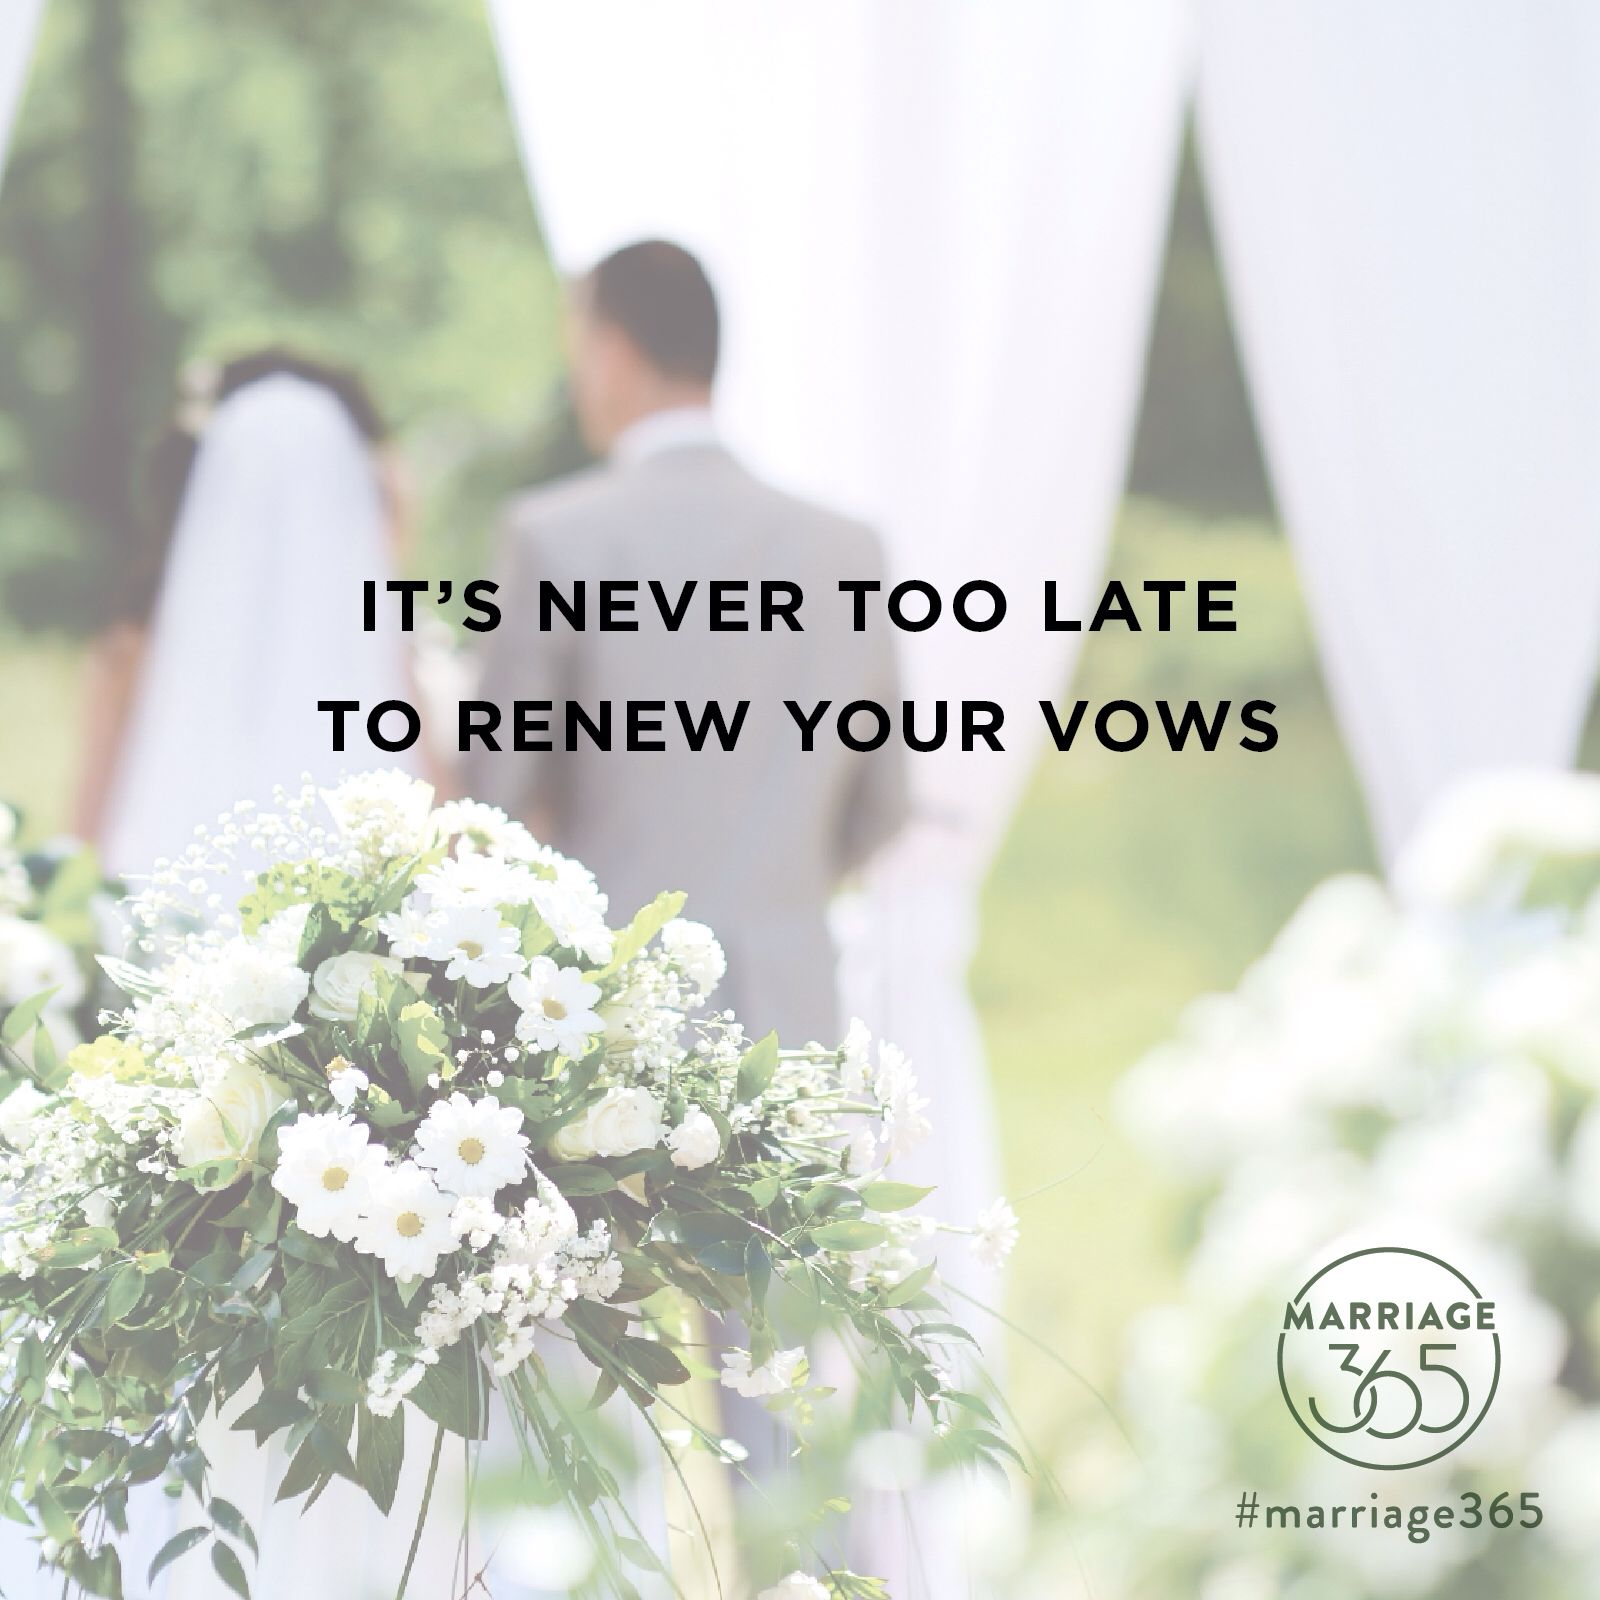 Vow Renewal Marriage Vows Marriage Advice Marriage Quotes